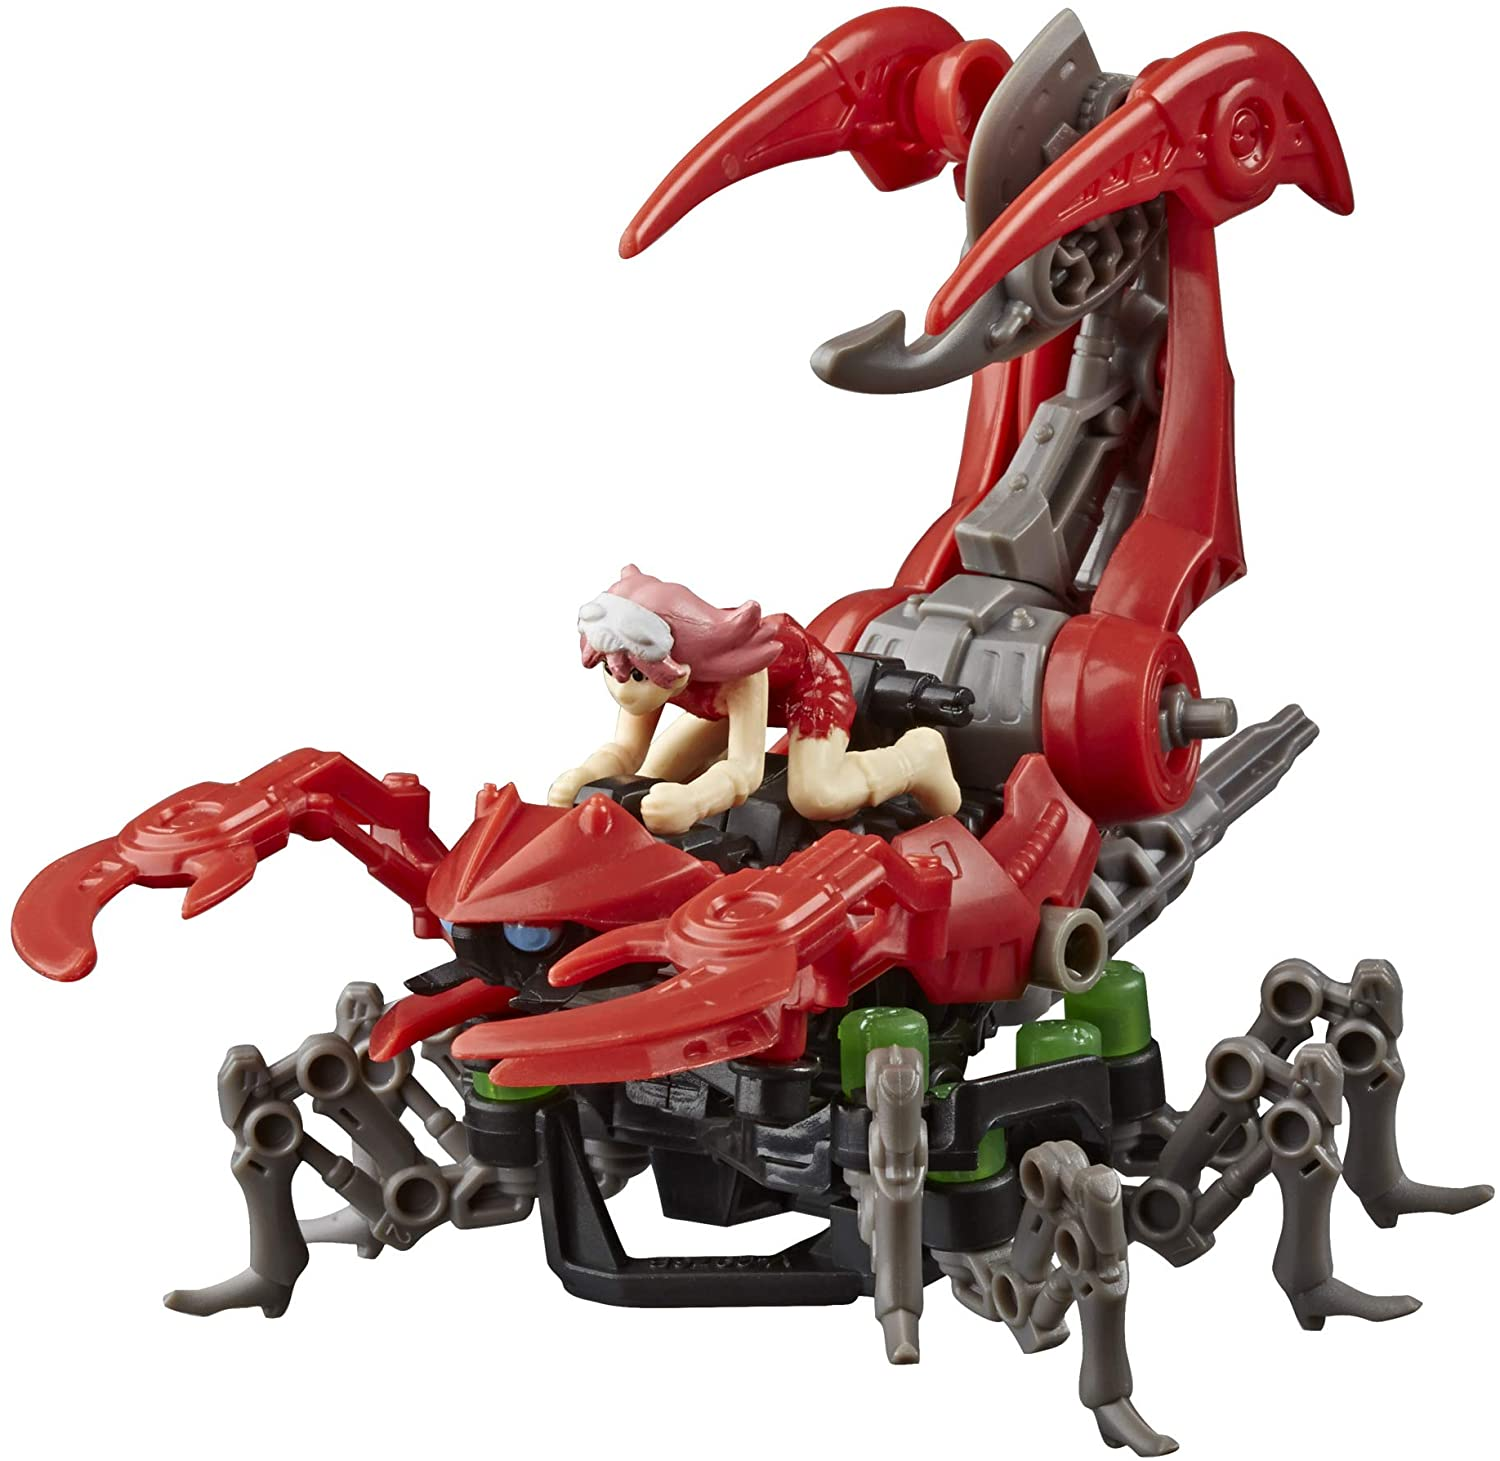 ZOIDS Hasbro Mega Battlers Needle - Scorpion-Type Buildable Beast Figure with Wind-Up Motion - Toys for Kids Ages 8 and Up, 33 Pieces